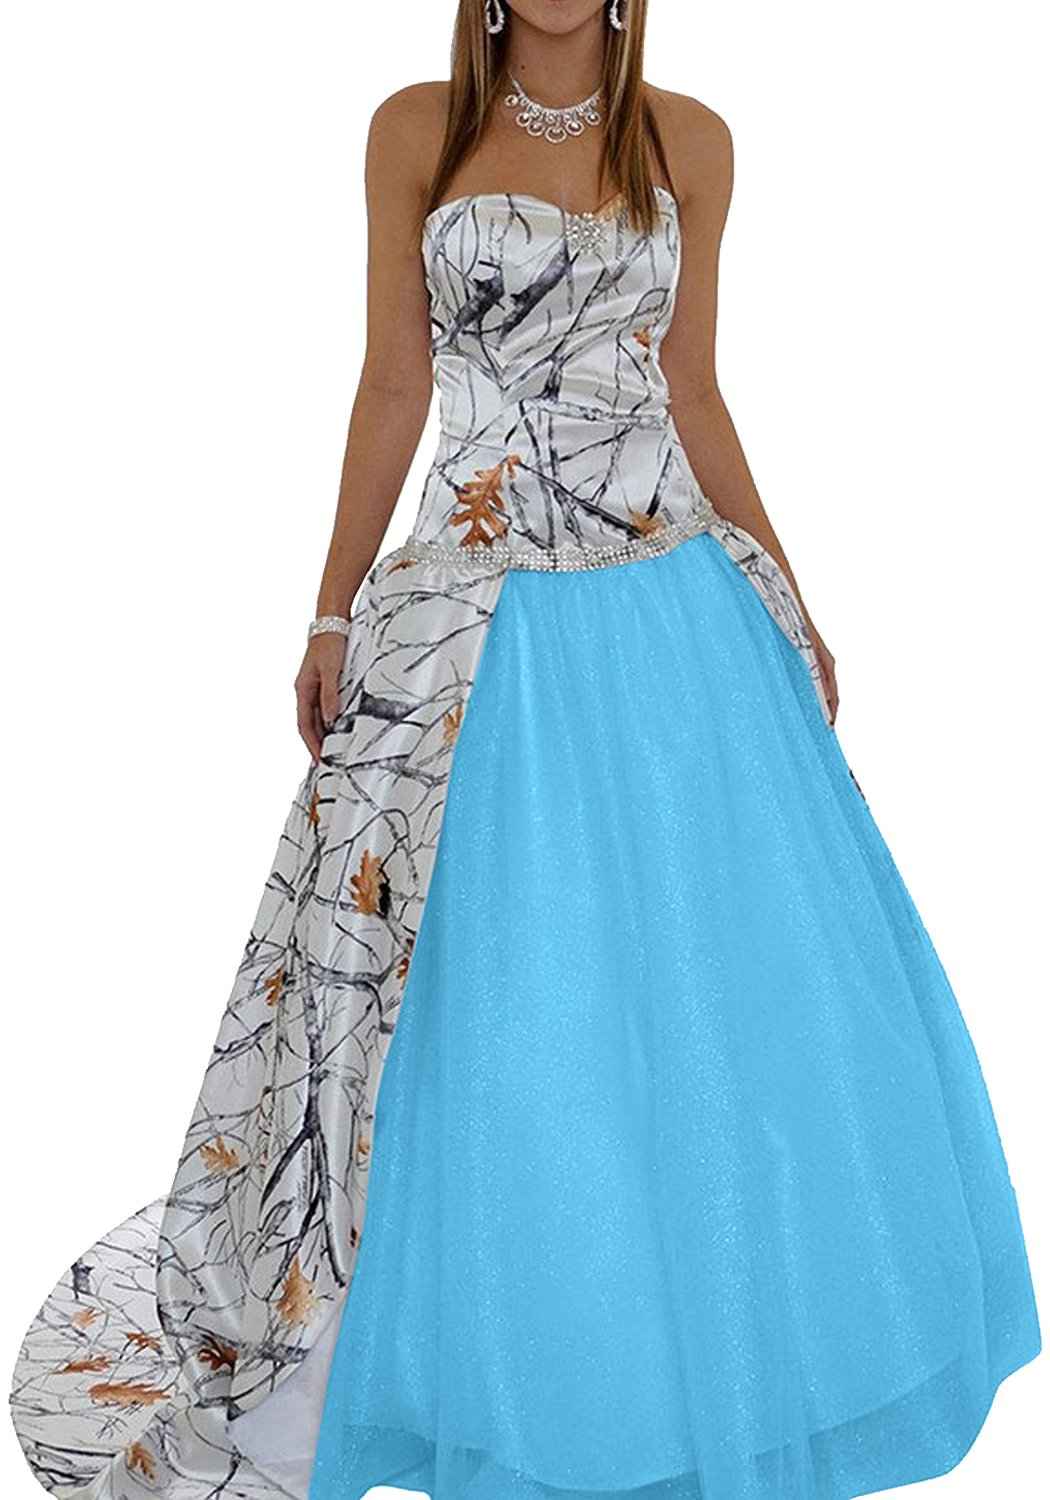 MILANO BRIDE 2017 Strapless Ball Gown Camo Wedding Dress Prom ...